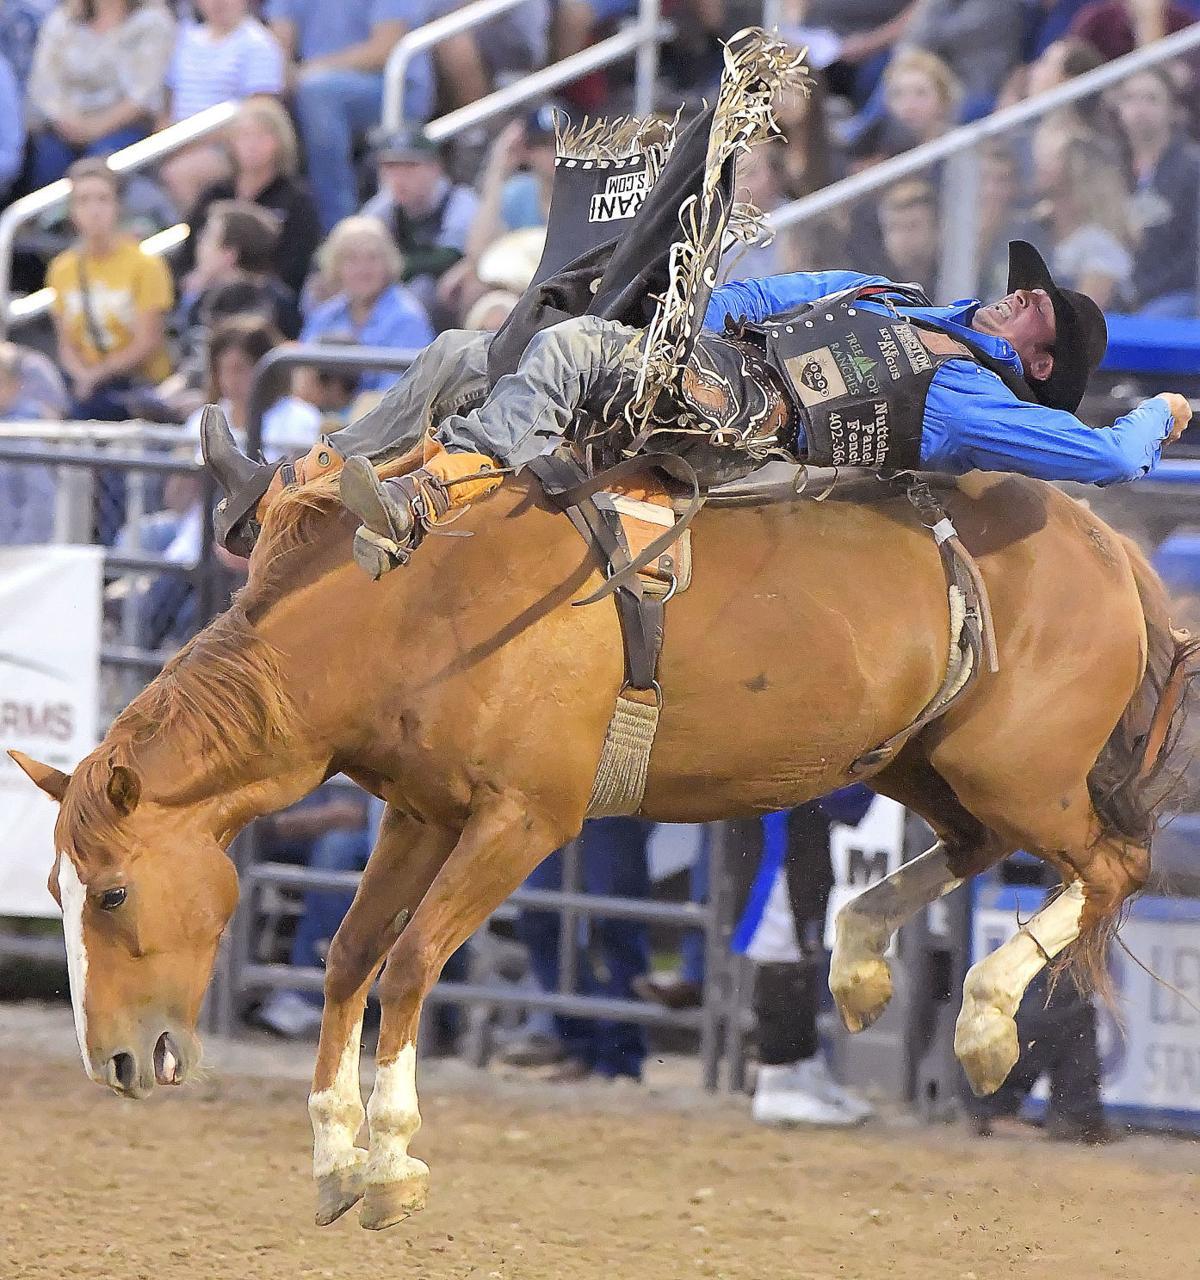 cache county rodeo MAIN